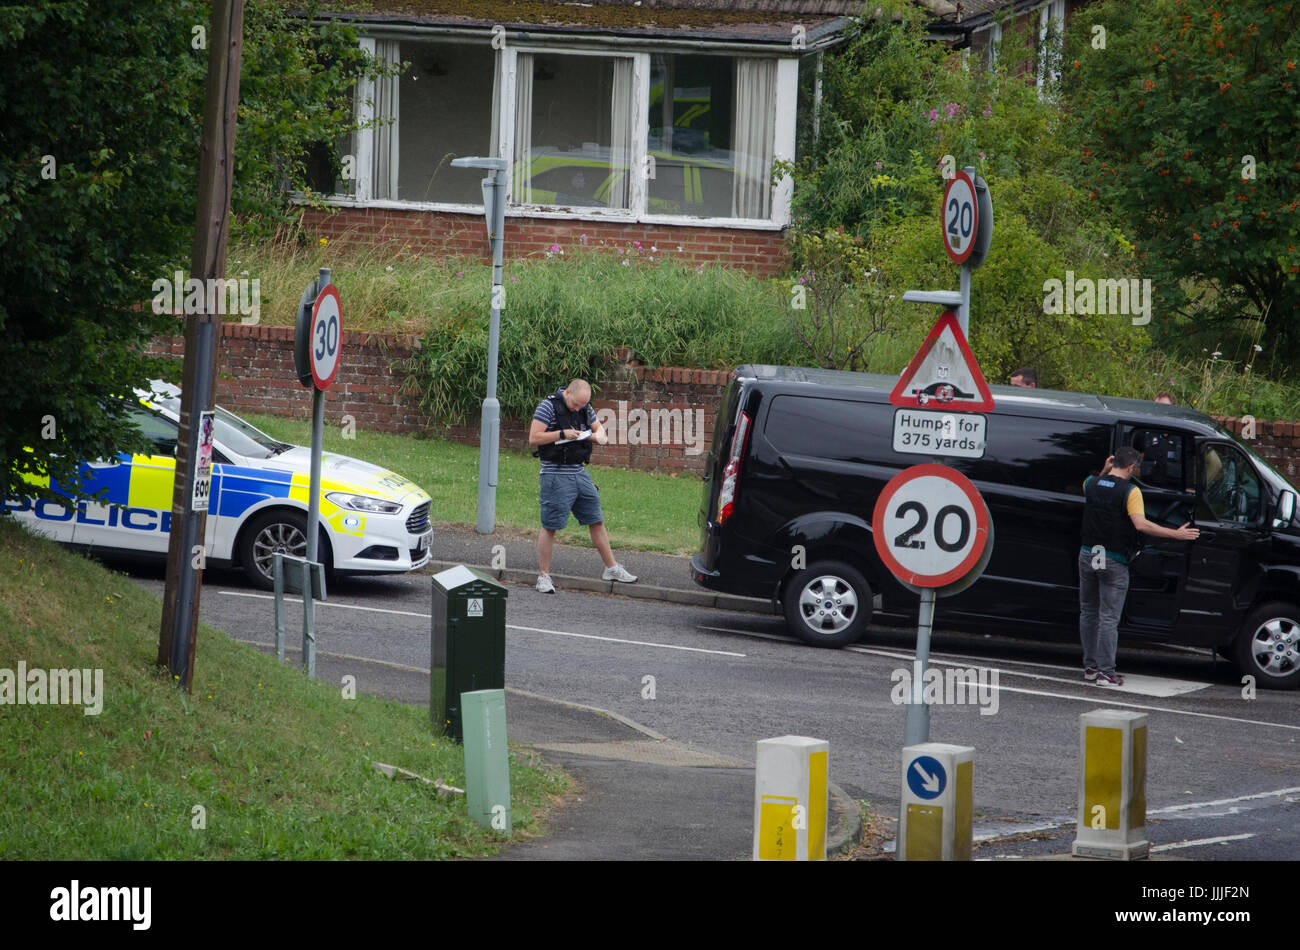 Stowmarket, Suffolk, UK. 20th Jul, 2017. Police stop and search a van and its occupants in Stowmarket today. Credit: - Stock Image